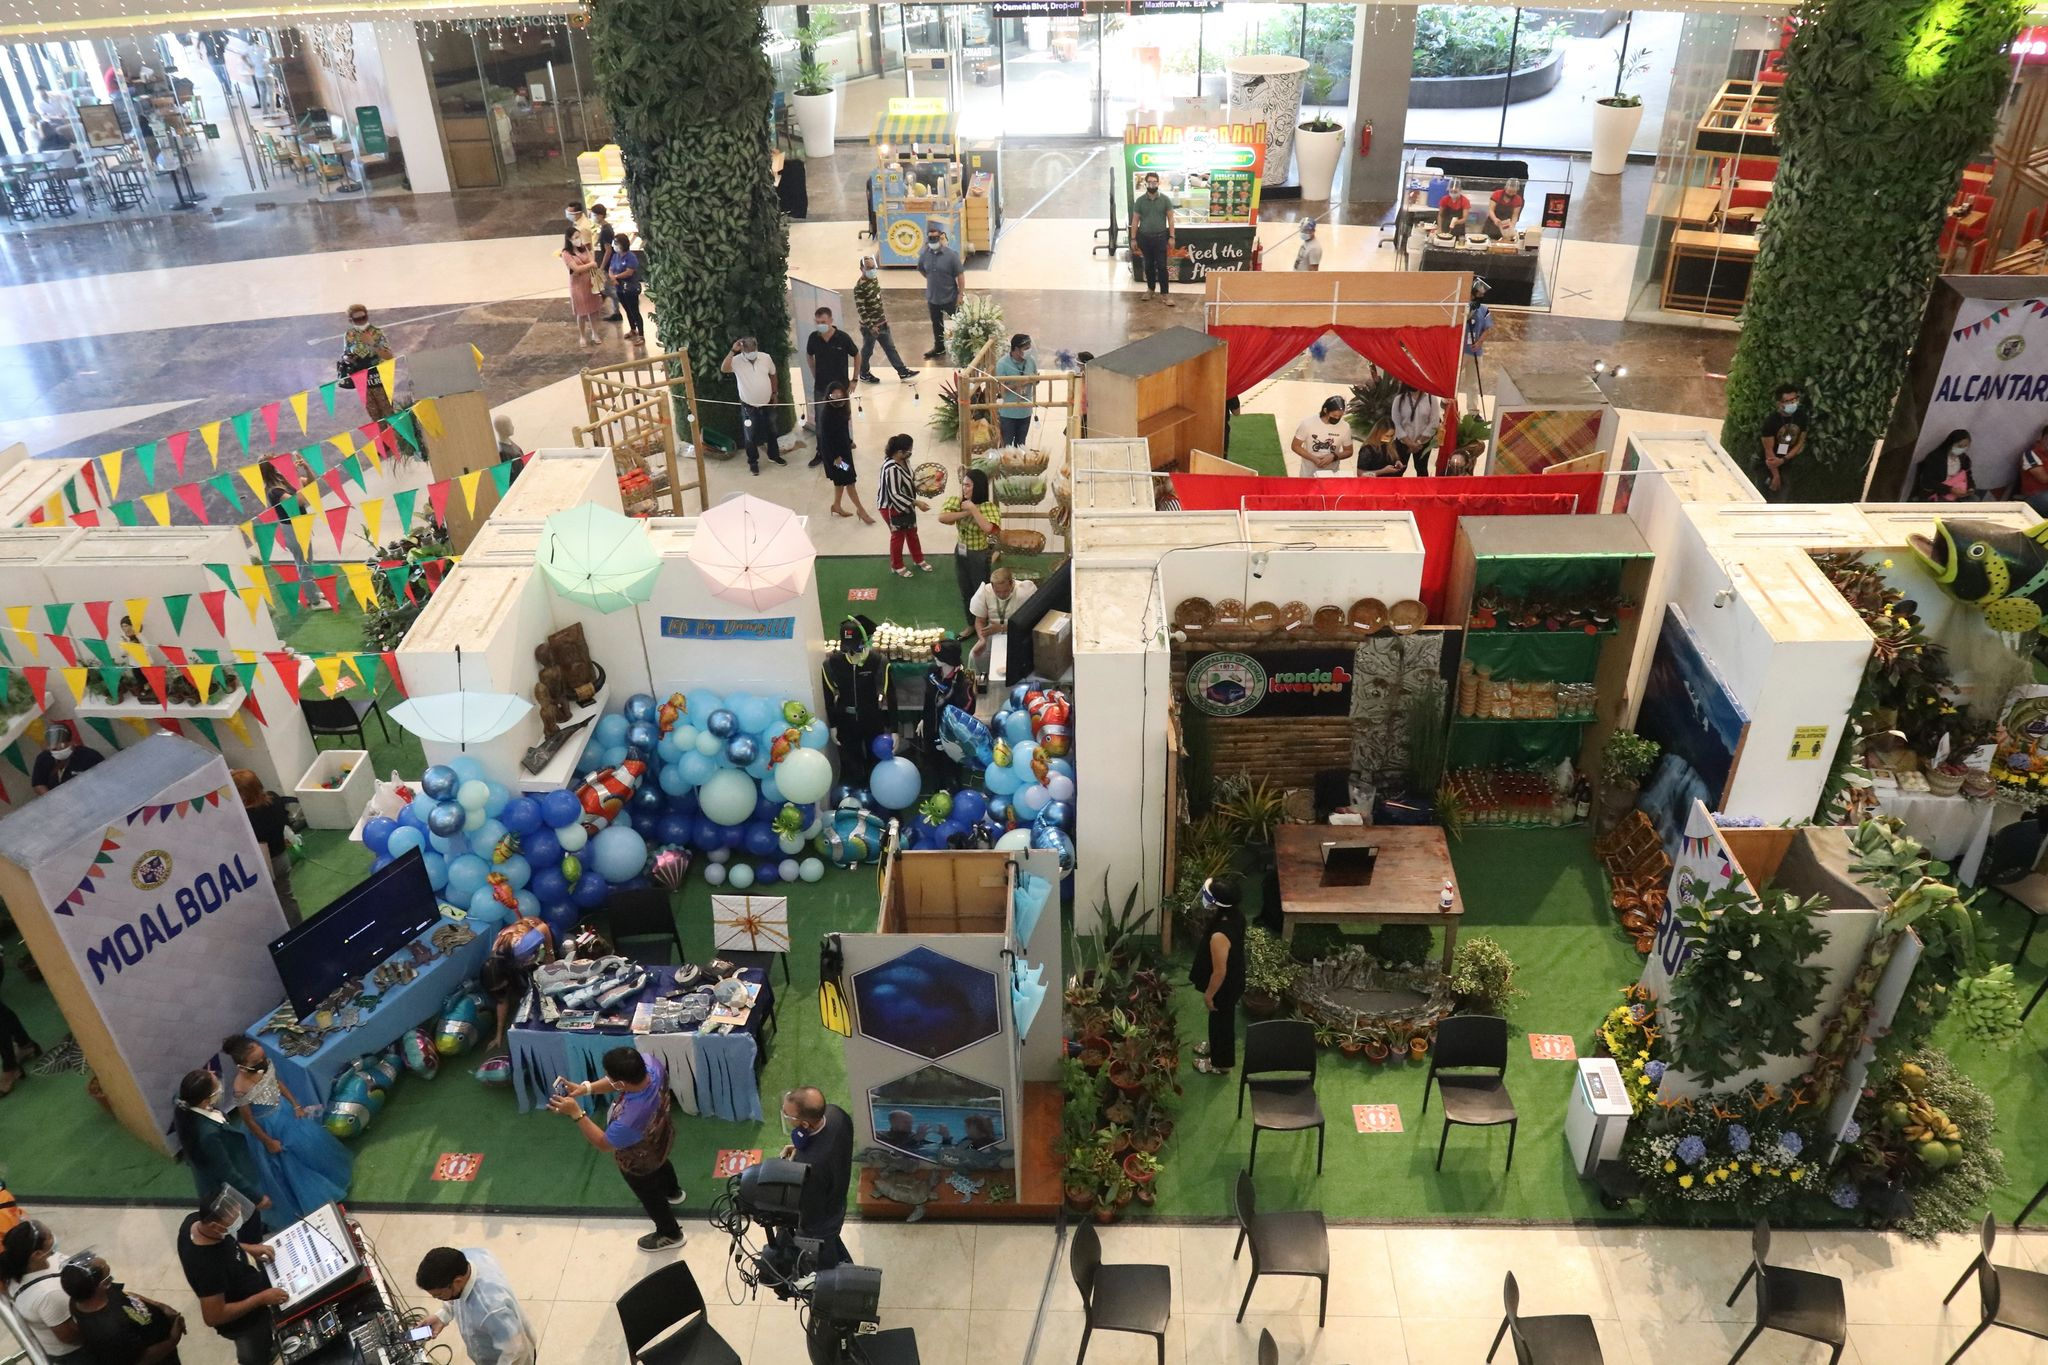 Town products on display at Robinsons Galleria